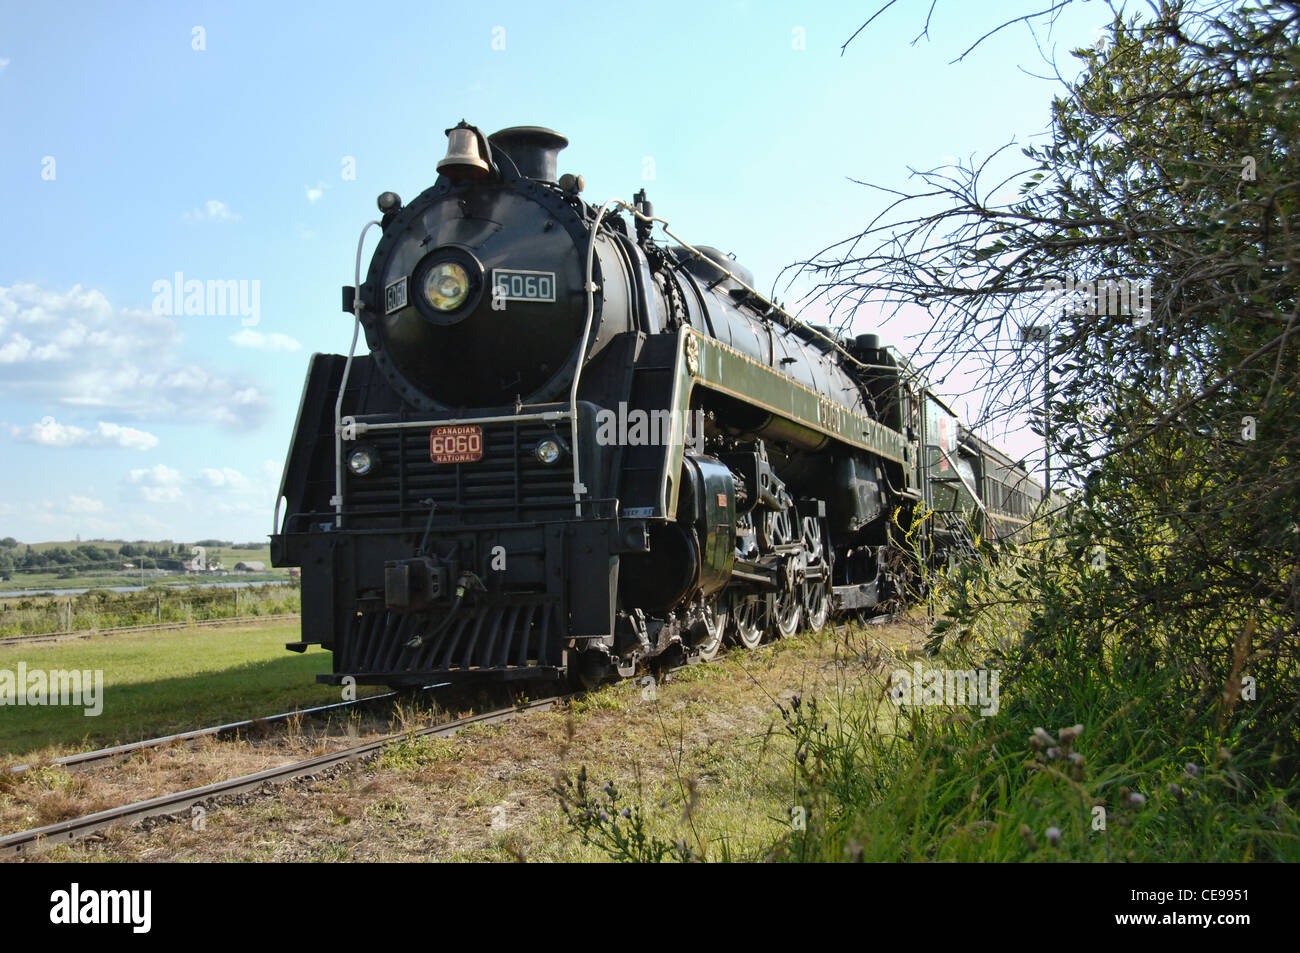 An old steam locomotive stopped on railway tracks. Stock Photo